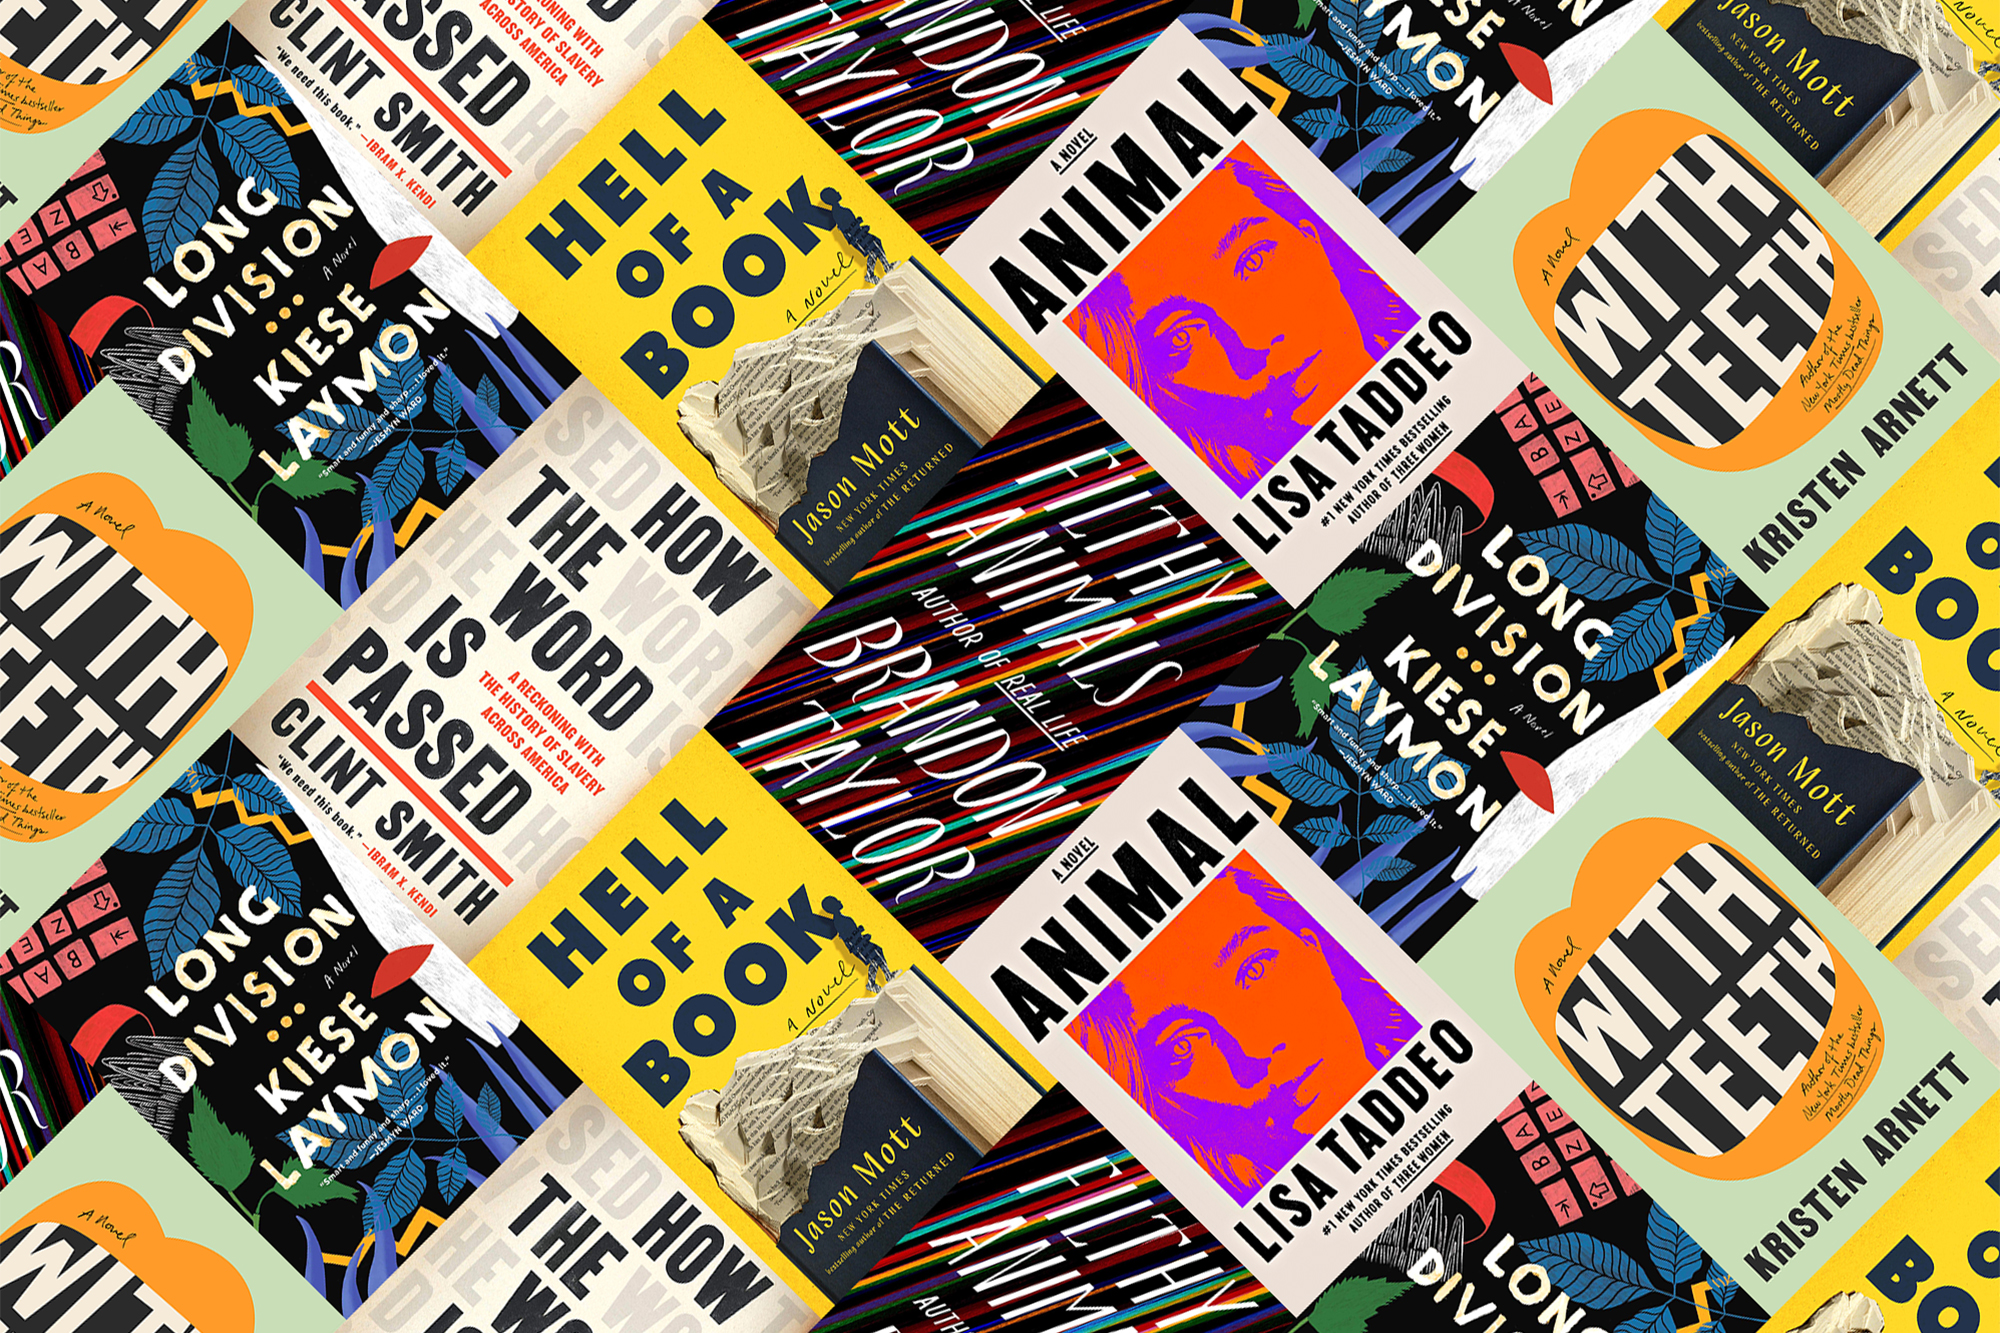 June Books to Read- with teeth by kristen arnett; how the word is passed by clint smith; long division by kiese laymon; animal by lisa taddeo; filthy animals by brandon taylor; hell of a book by jason mott